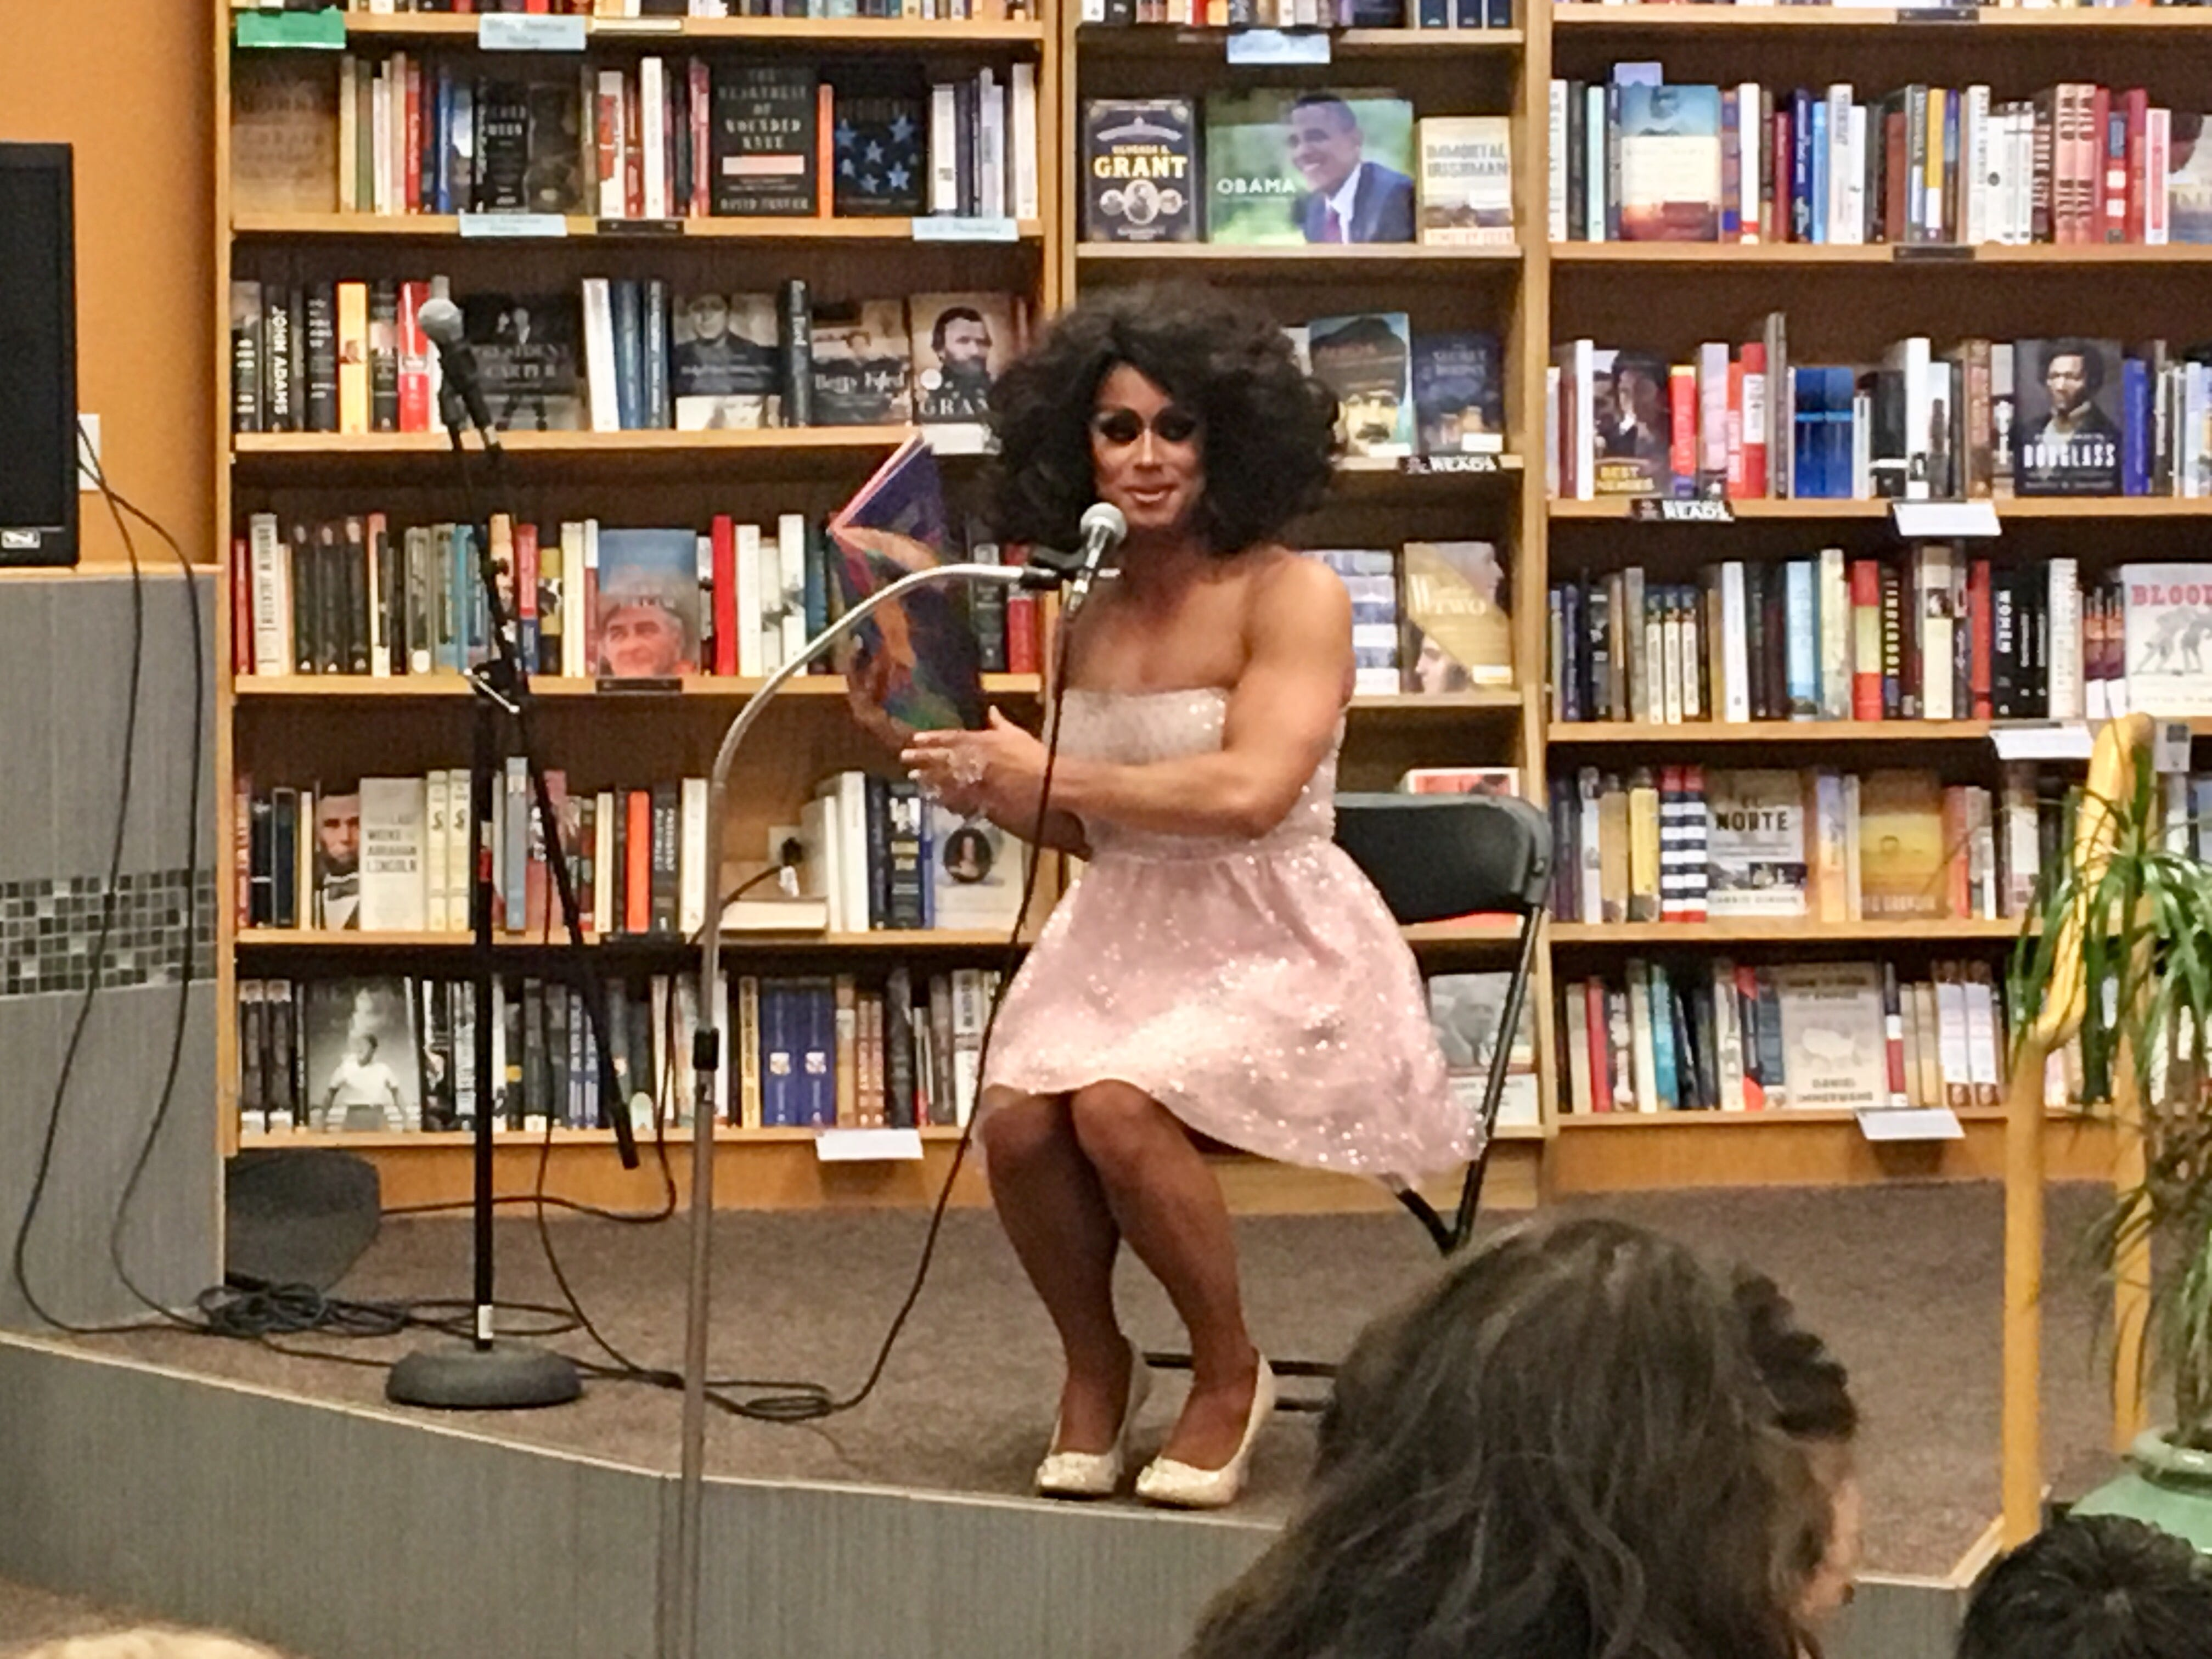 Drag queen Nevaeh McKenzie came on stage to read to kids at Changing Hands Bookstore in Tempe wearing a strapless glittery pink gown and high heels.